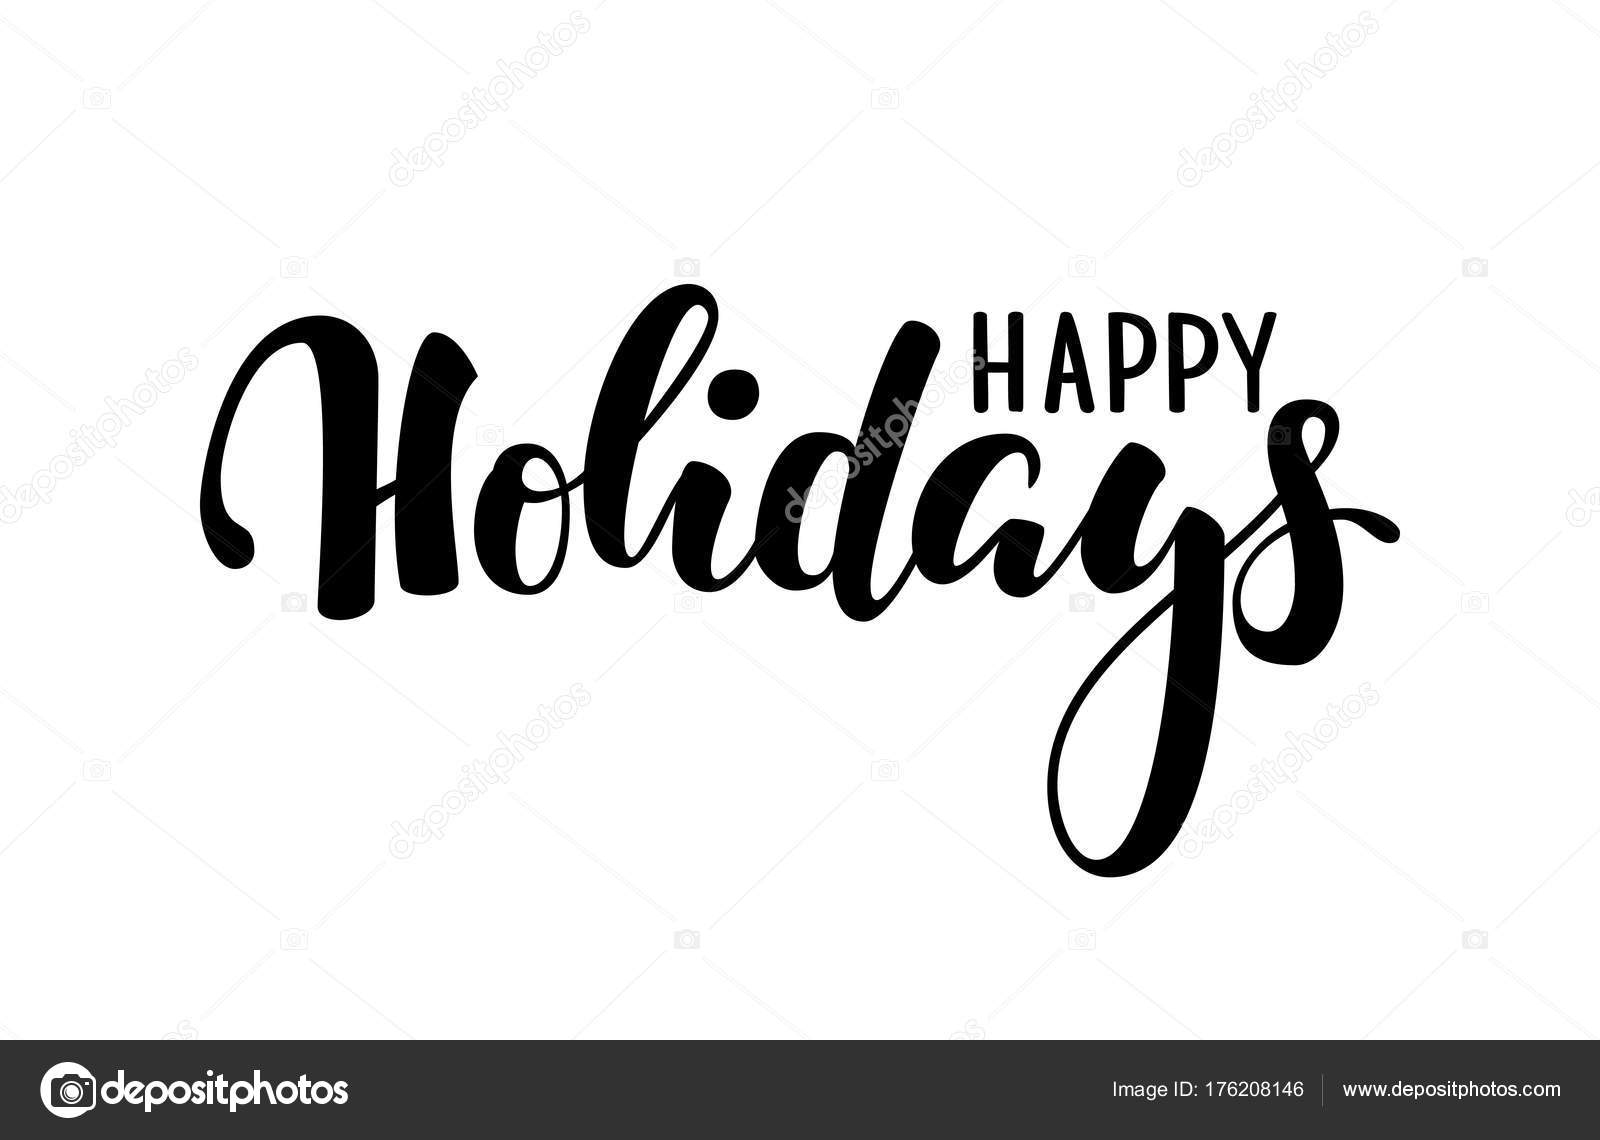 Happy Holidays Hand Drawn Creative Calligraphy Brush Pen Lettering